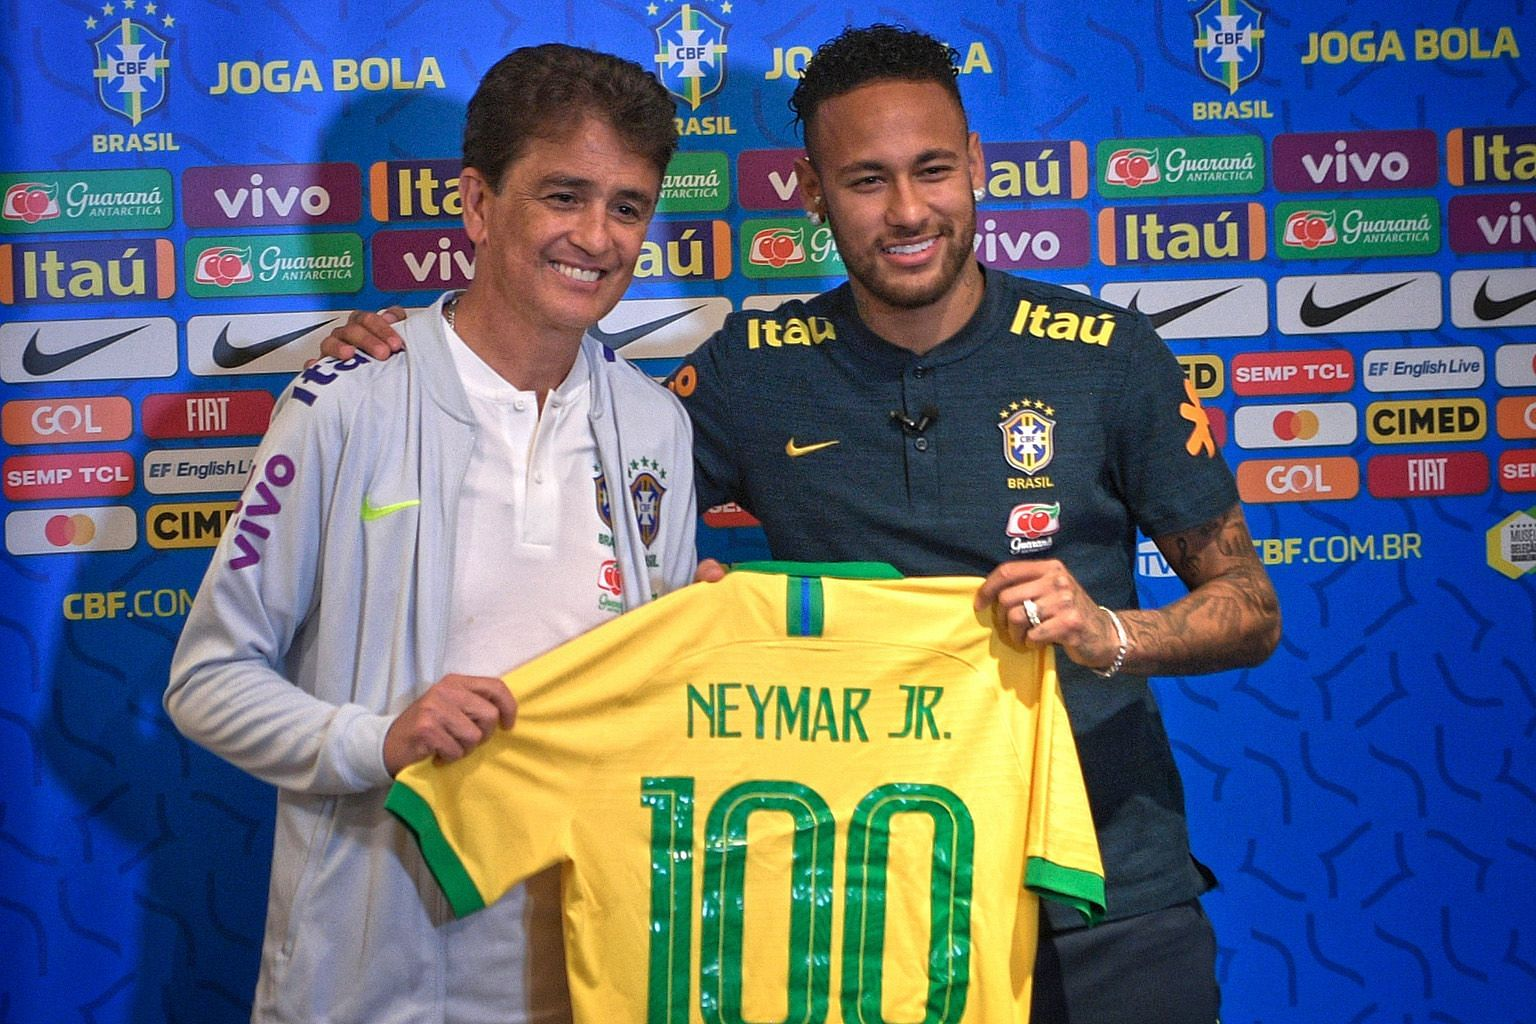 Former Brazil striker Bebeto handing talisman Neymar a jersey with the number 100 yesterday to commemorate the latter's 100th cap for Brazil in today's match against Senegal. The Selecao have drawn fans in Singapore including these flag-bearers at Ka